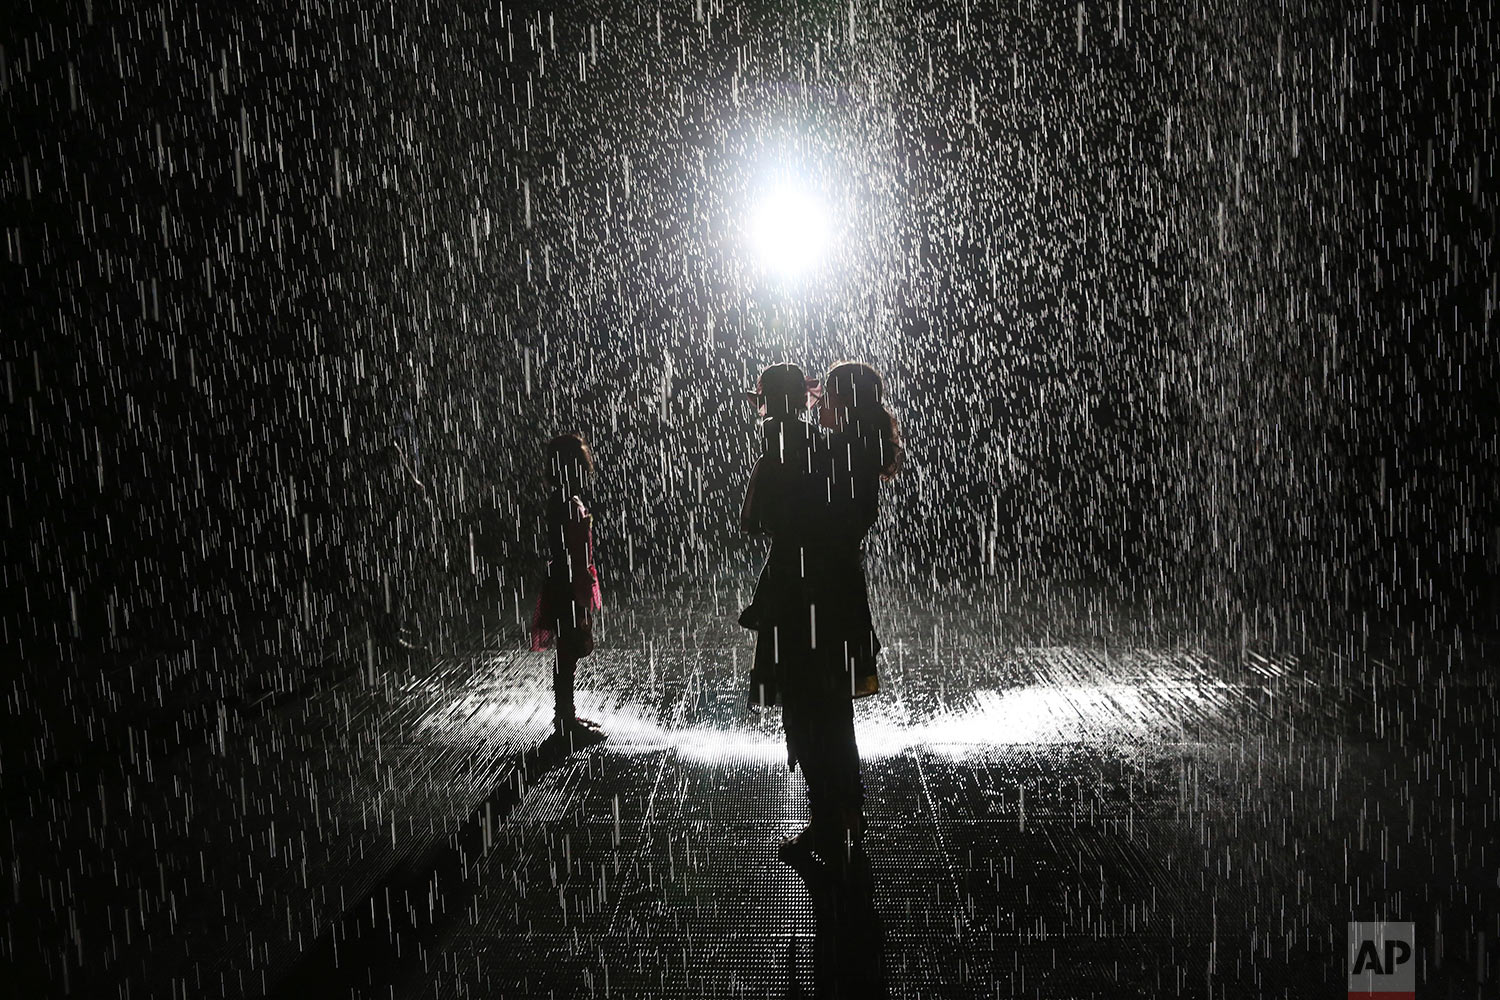 """Visitors walk through the Sharjah Art Foundation's """"Rain Room"""" installation in Sharjah, United Arab Emirates, Sunday, July 22, 2018. The art installation uses motion sensors to allow visitors to walk through it without getting wet as 2,500 liters of self-cleaning recycled water fall. (AP Photo/Jon Gambrell)"""